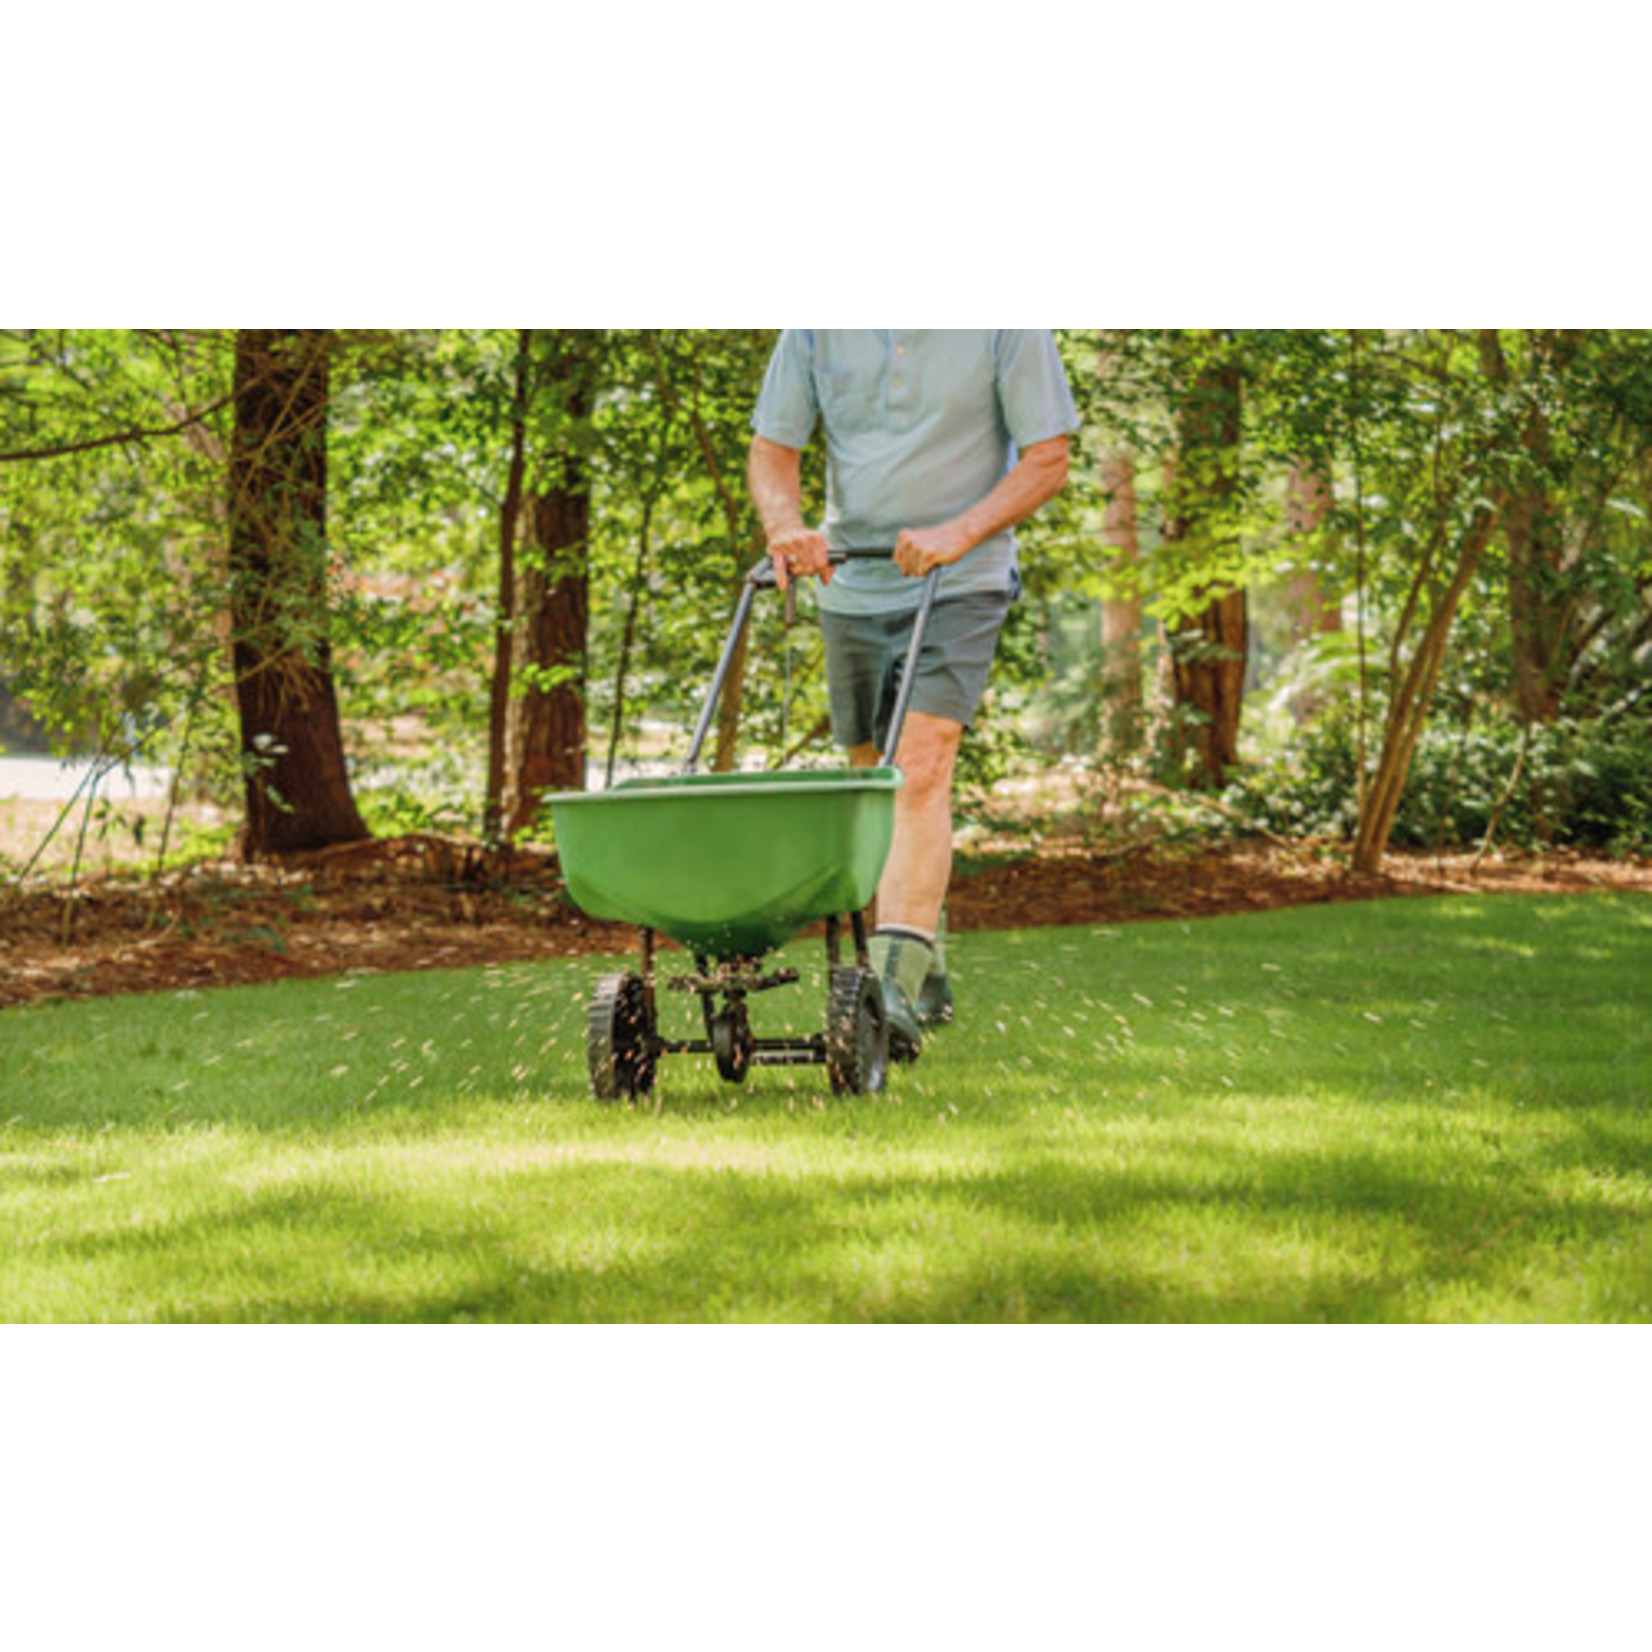 Lawn Fertilizer: Starter 8-32-16 - 25 kg